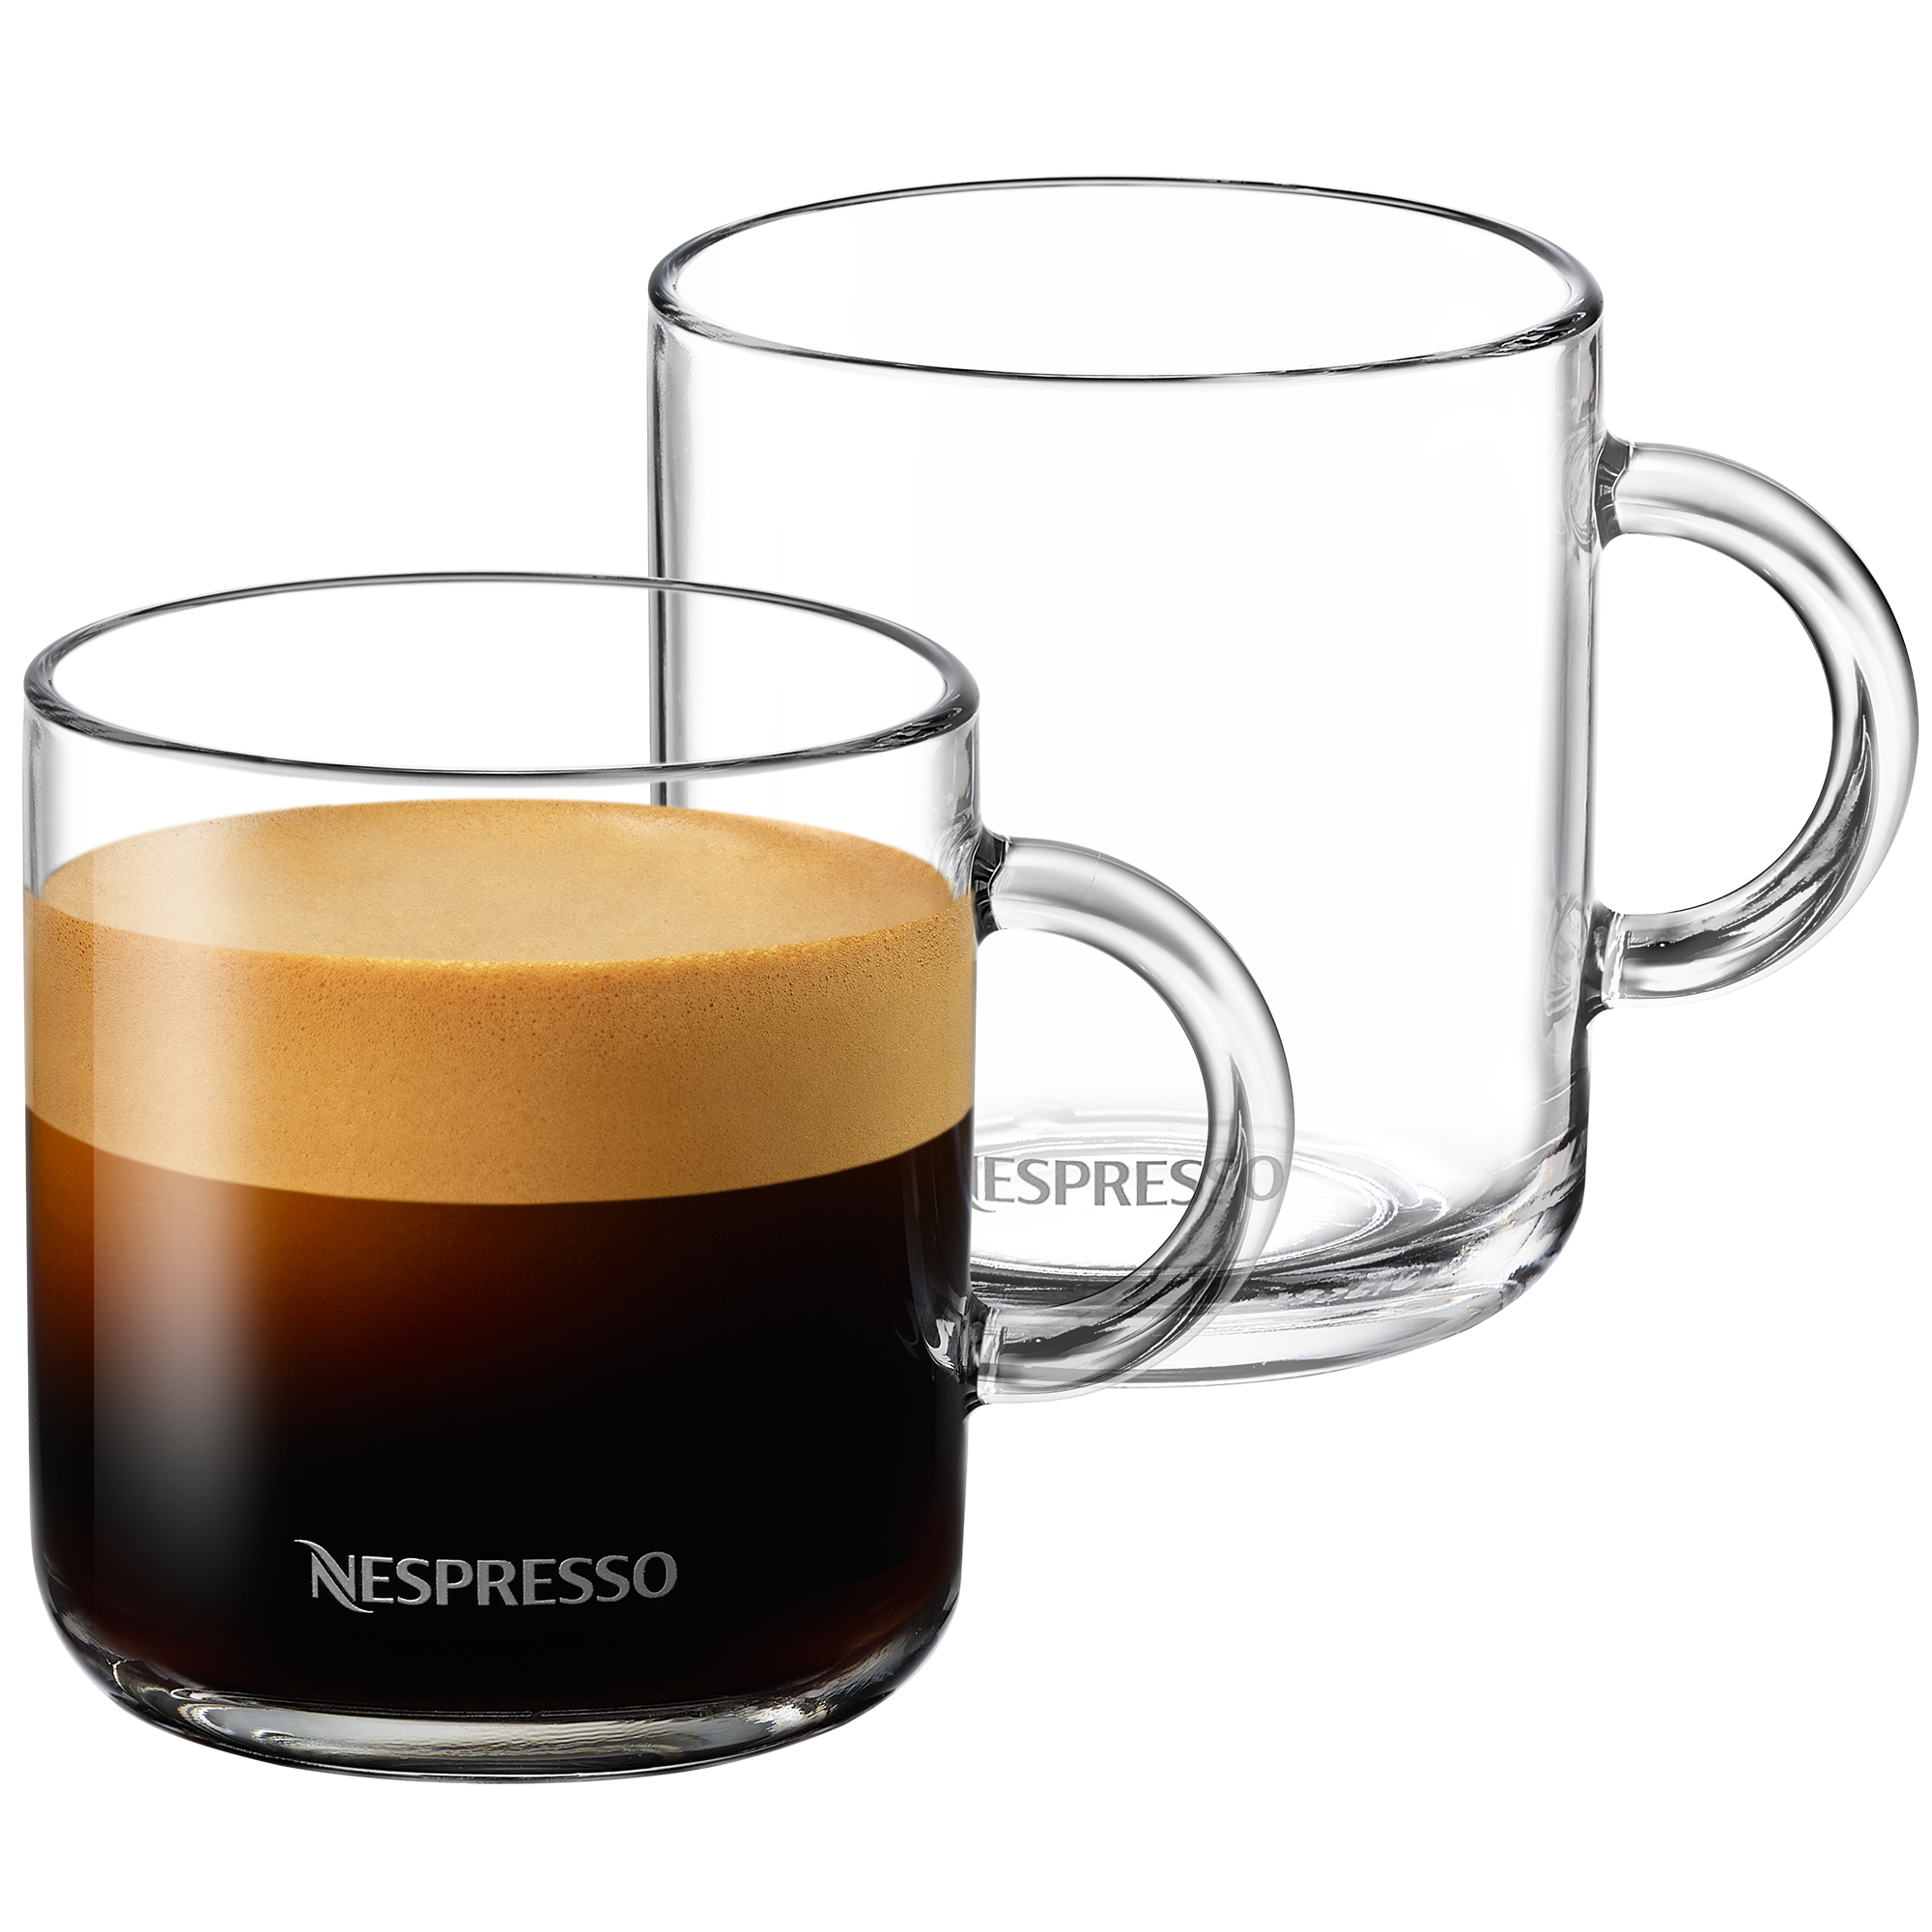 intenso coffee capsules nespresso vertuoline. Black Bedroom Furniture Sets. Home Design Ideas